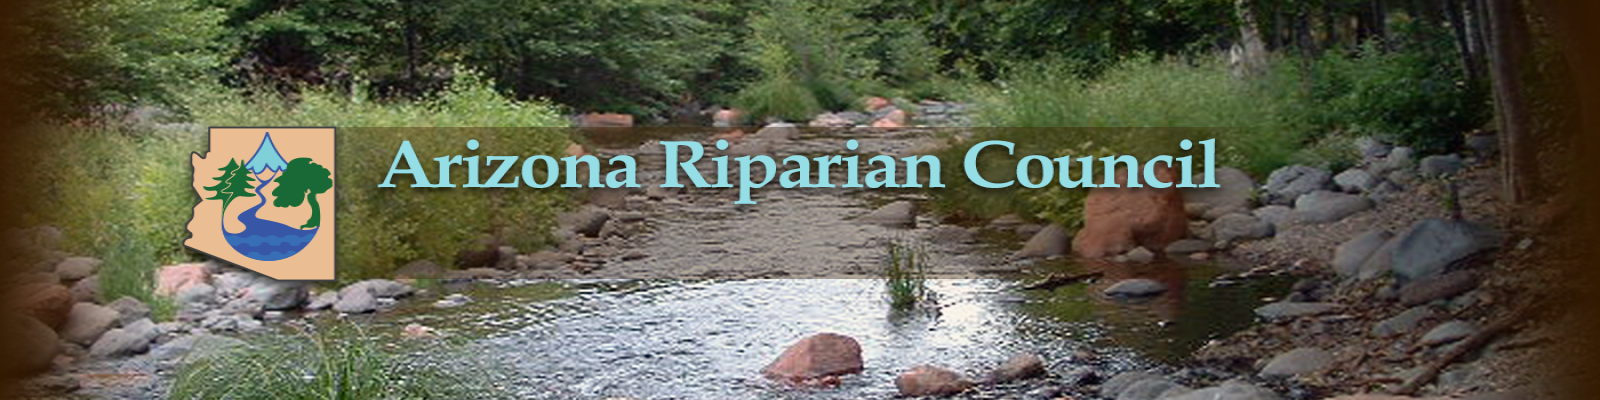 Arizona Riparian Council